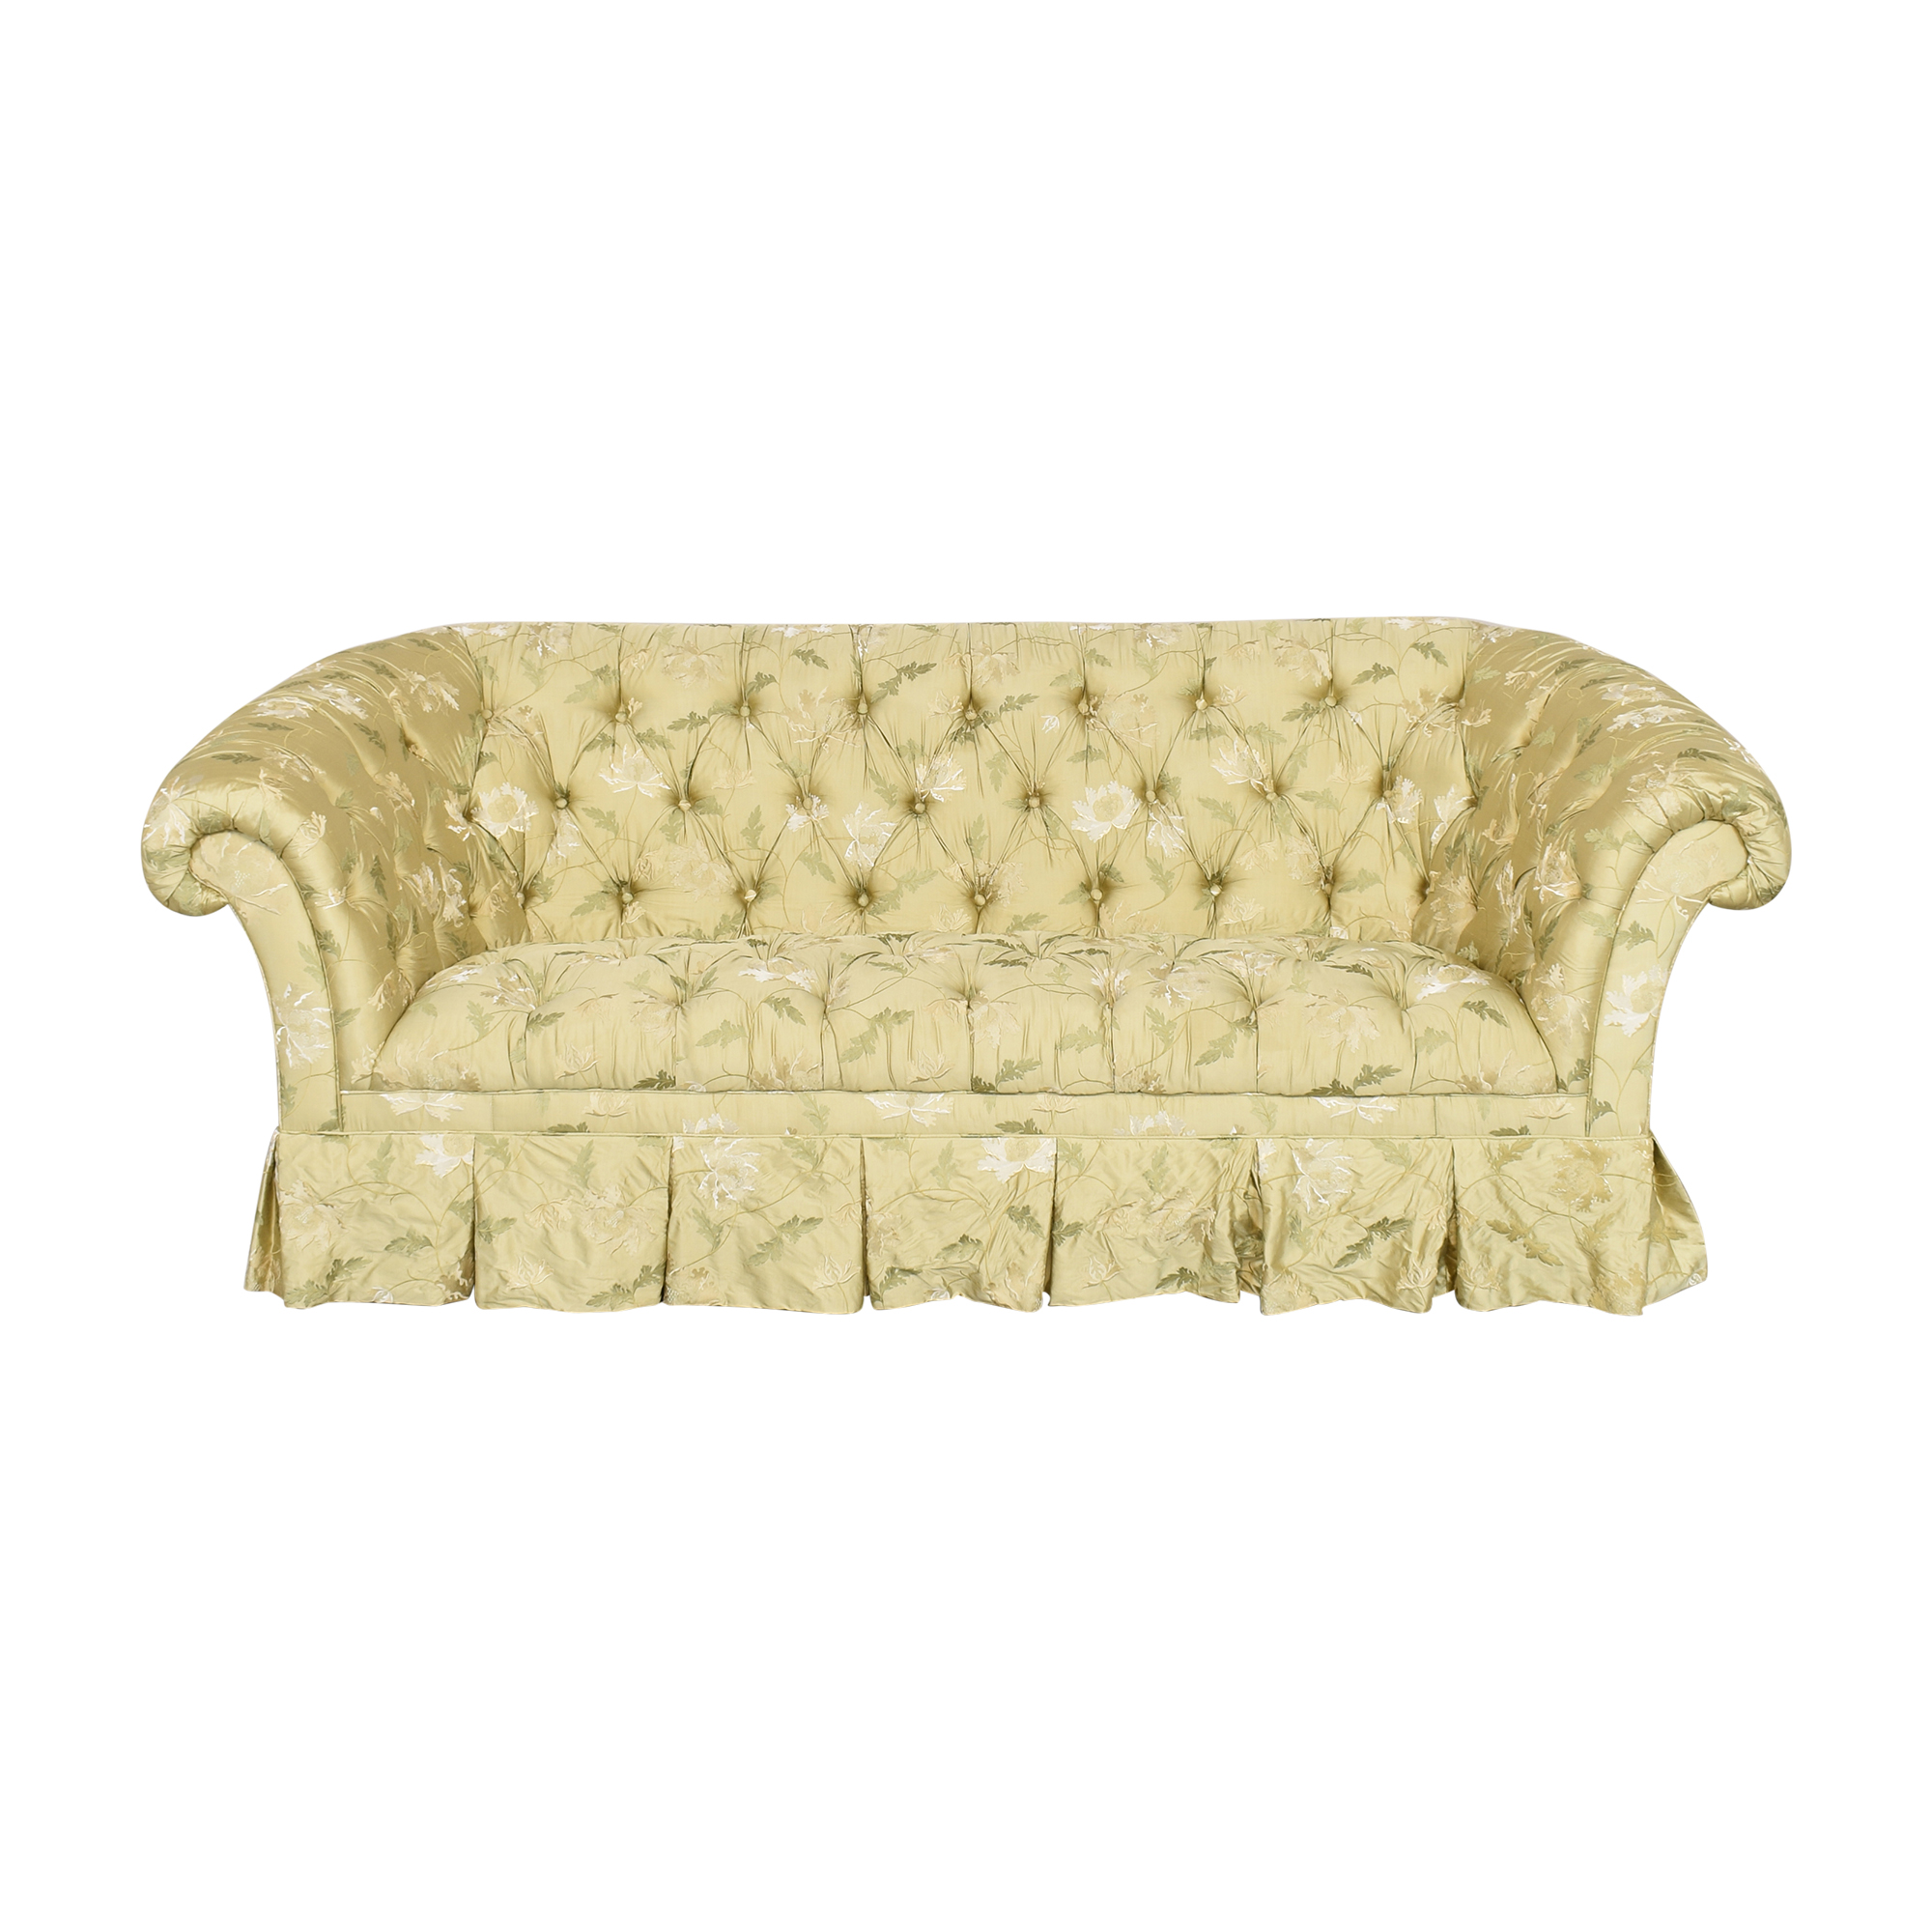 Lillian August Chesterfield Floral Sofa sale